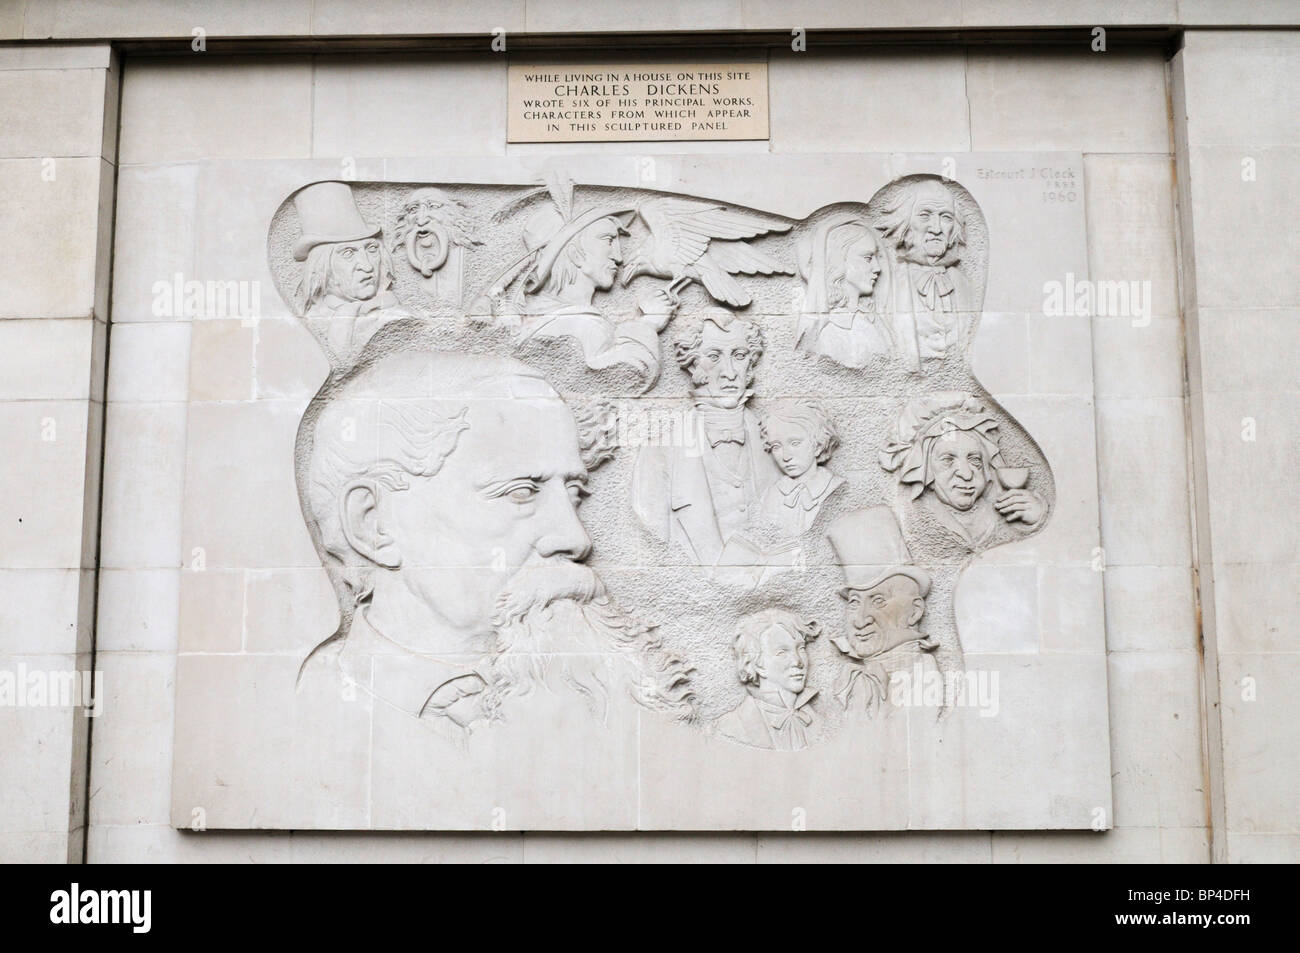 Bas Relief carving sculpture of Charles Dickens Characters, Marylebone Road, London, England, UK - Stock Image